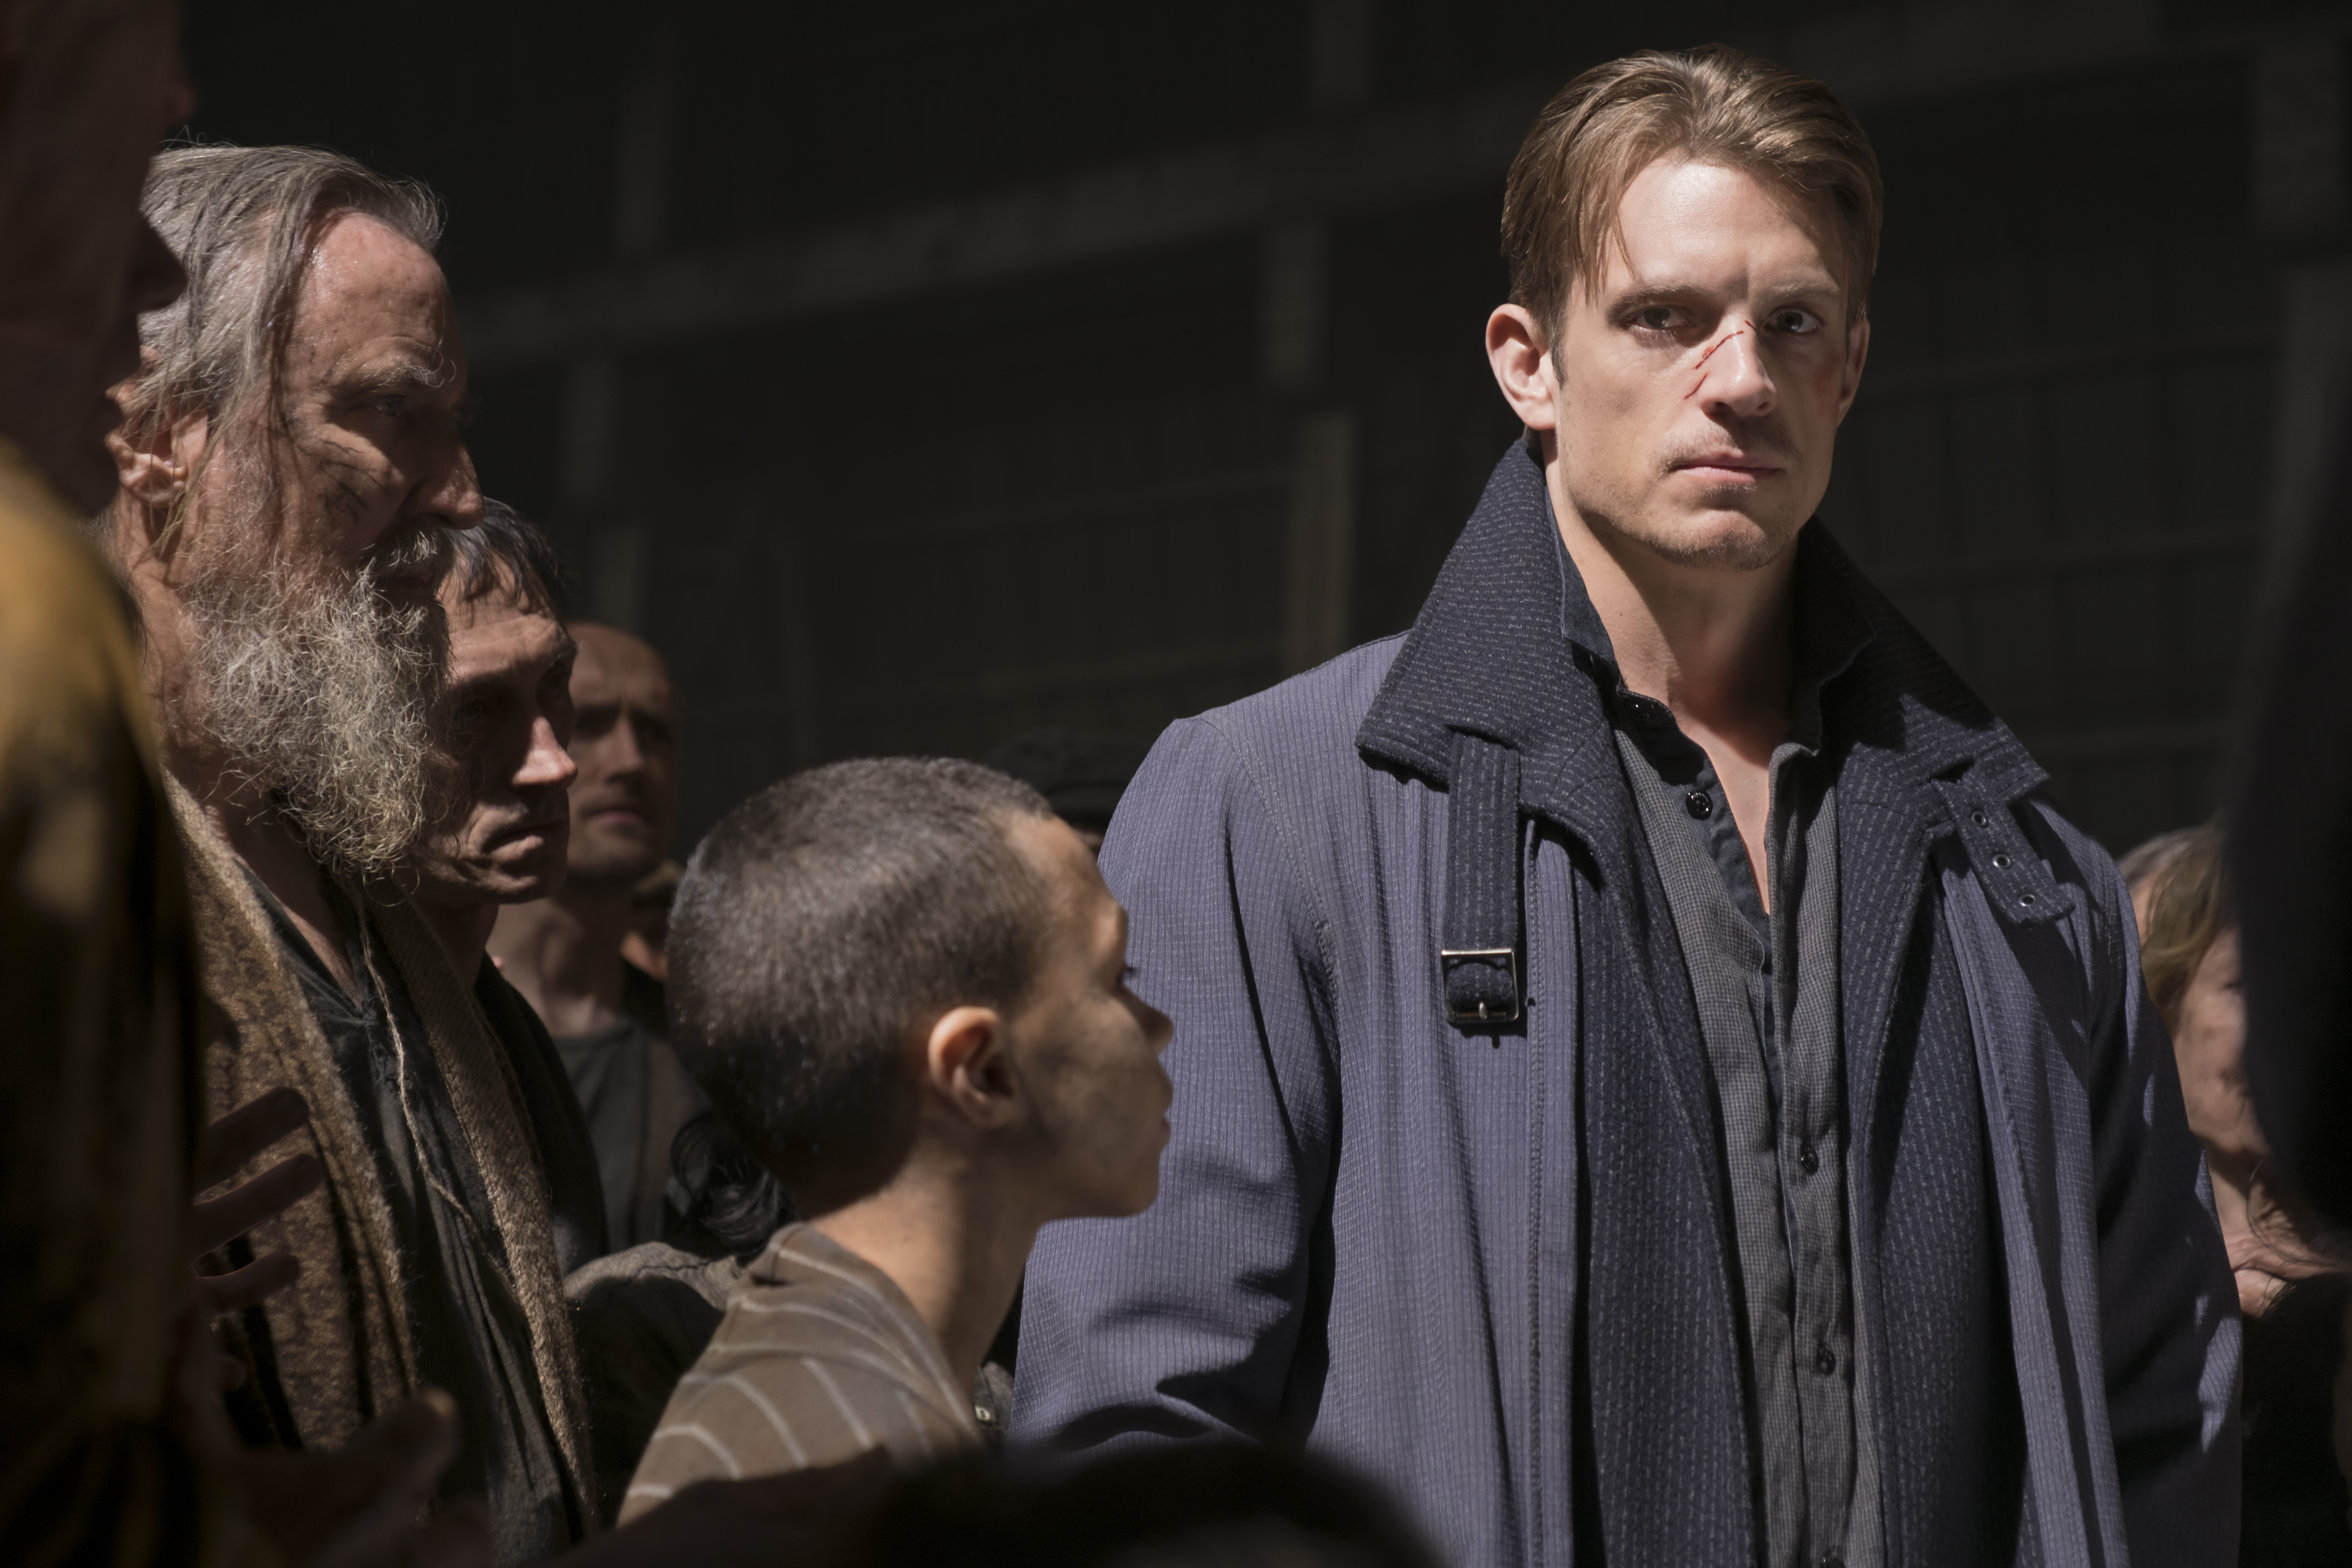 Altered Carbon's leading man, Joel Kinnaman in action as Kovacs (Netflix)